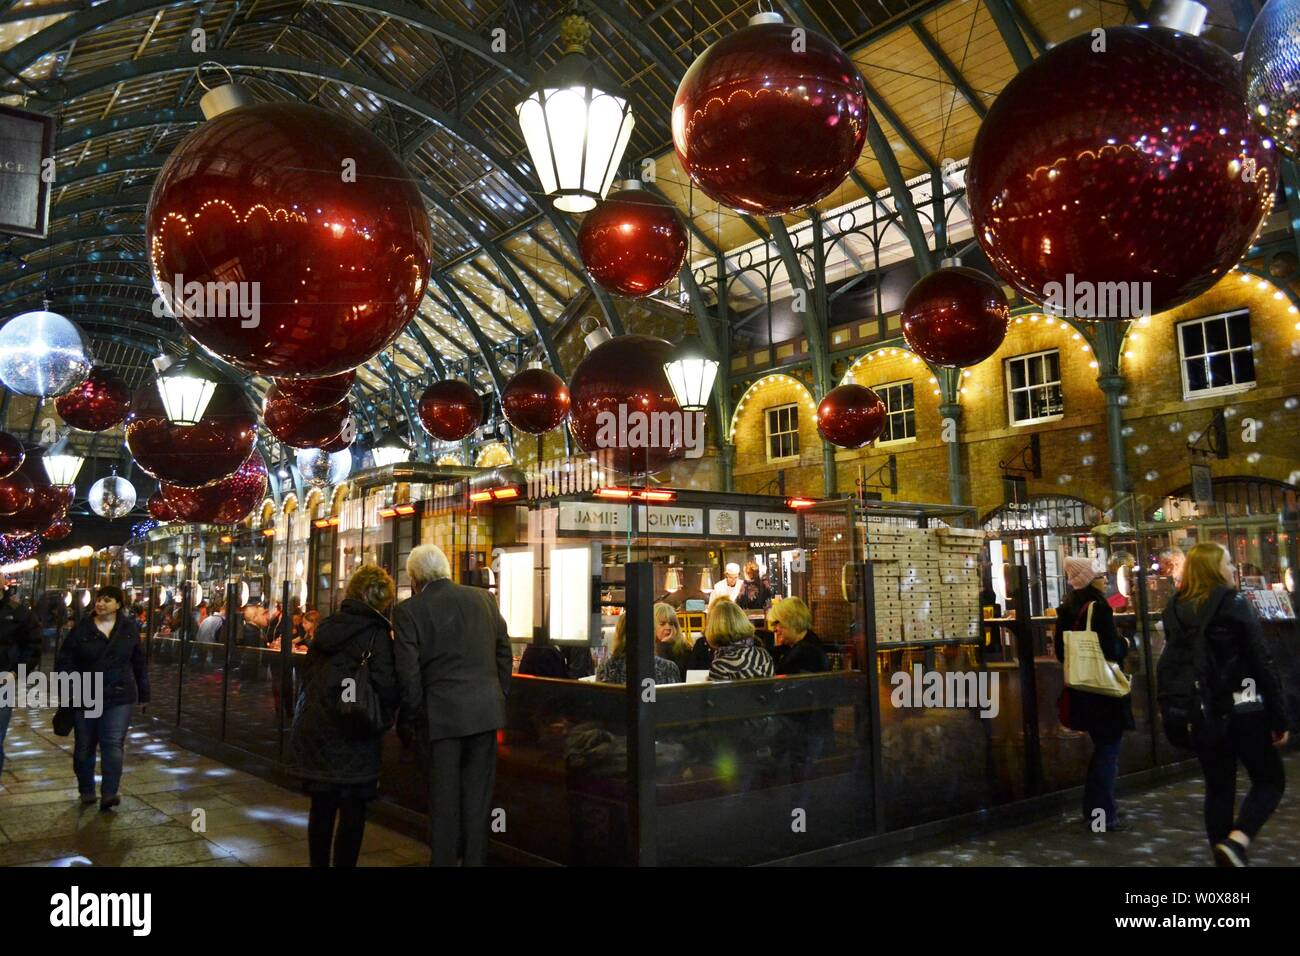 London/UK - November 27, 2013: People eating at the Covent Garden restaurant space during Christmas holidays. Stock Photo